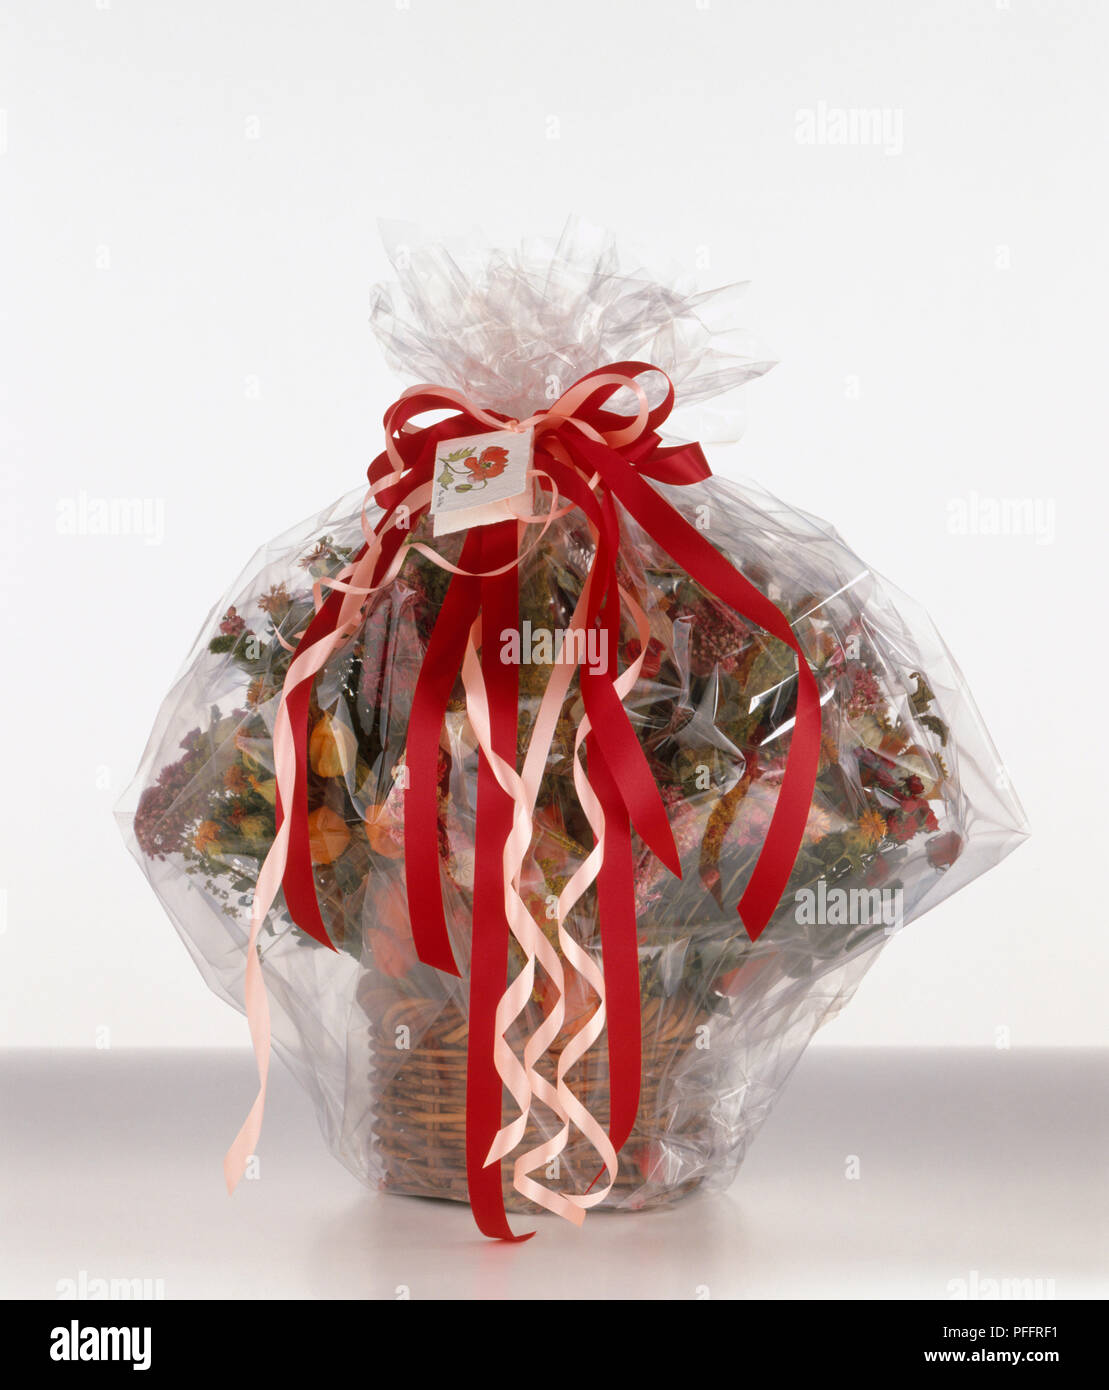 Gift Of Dried Flowers And Pot Pourri In Basket Wrapped In